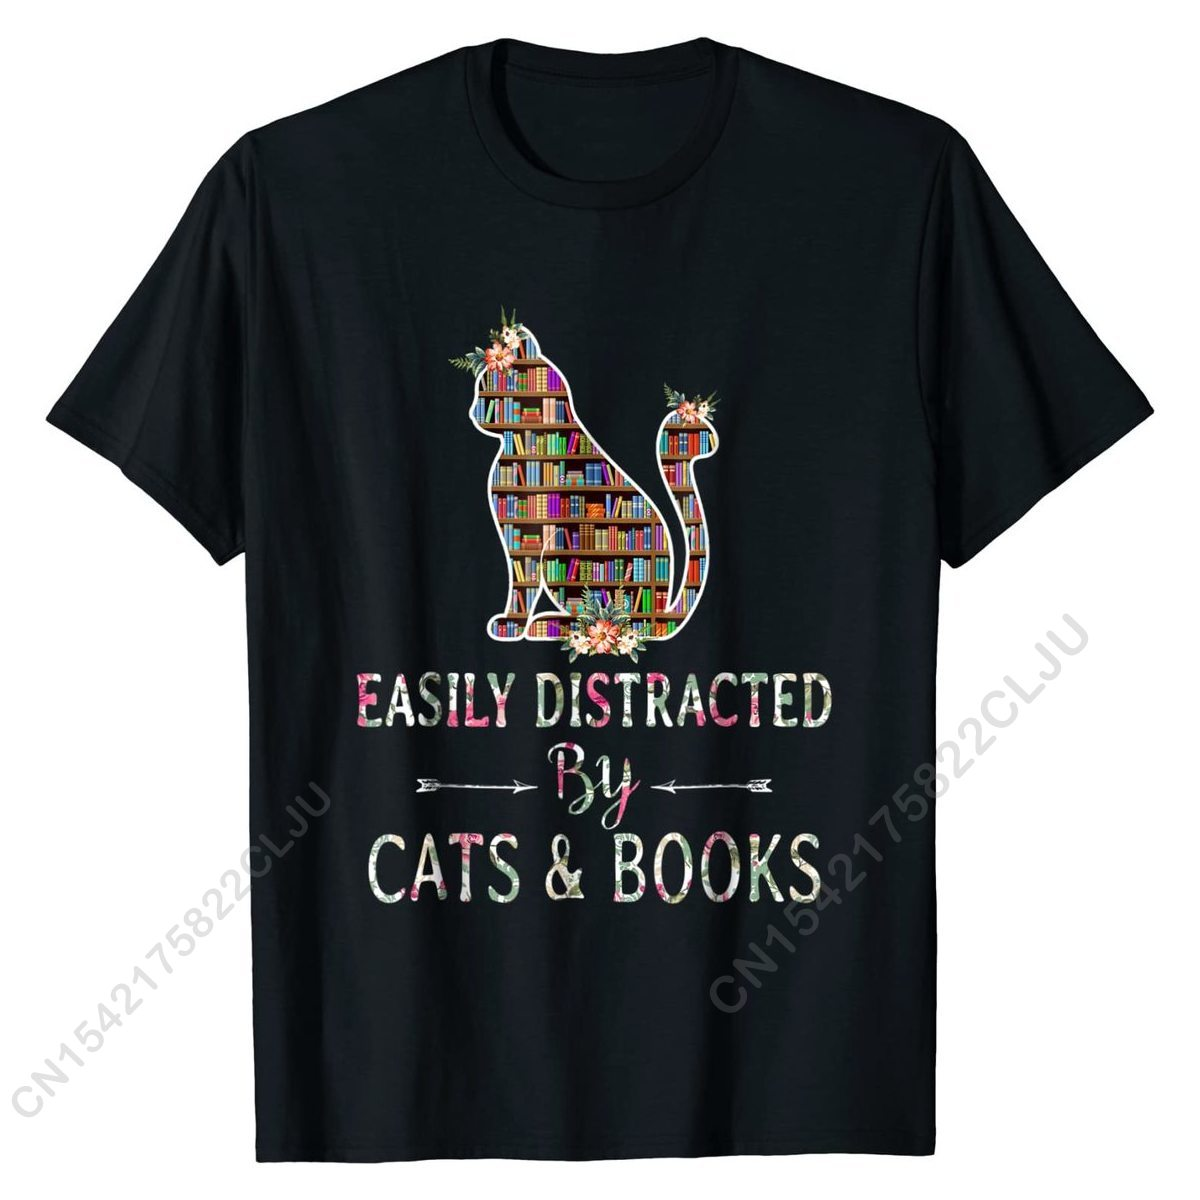 Cat Lover - Book Easily Distracted By Books Cotton Casual Tops Shirts Faddish Men T Shirt Design